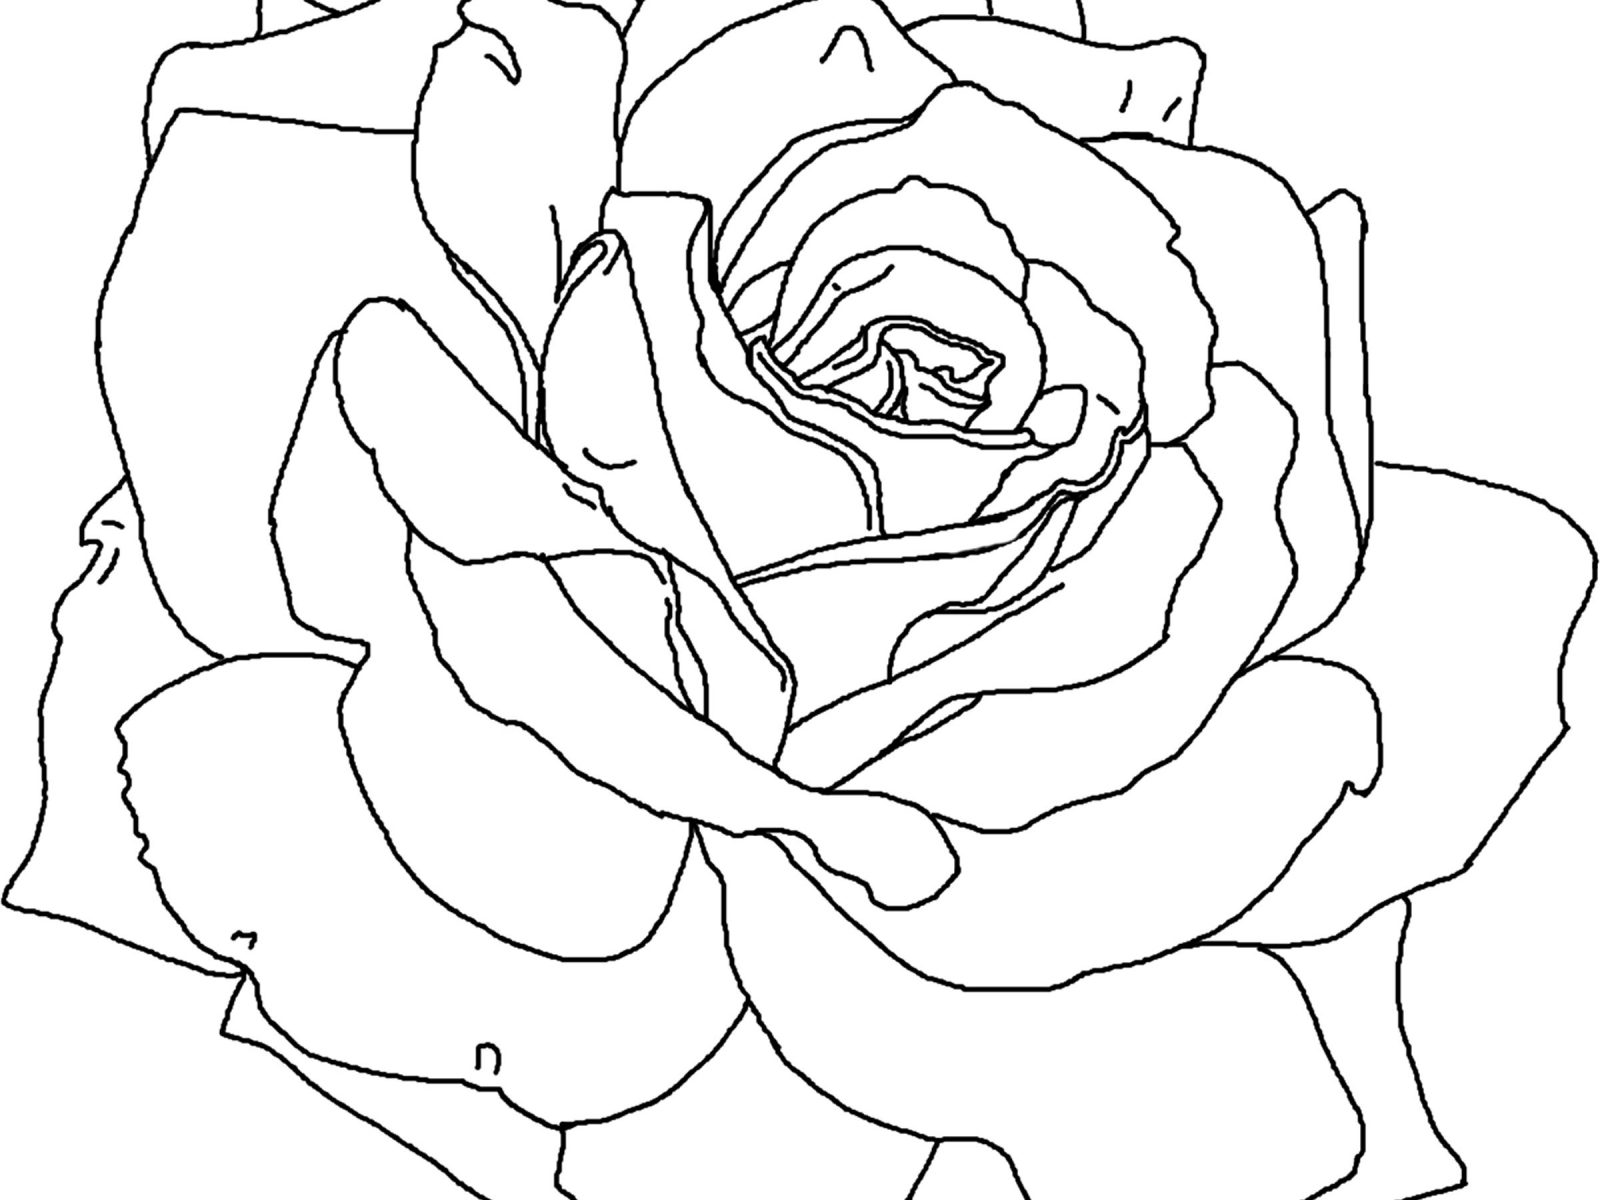 1600x1200 Roses Coloring Pages Free Printable Flowers Pretty Beautiful Red